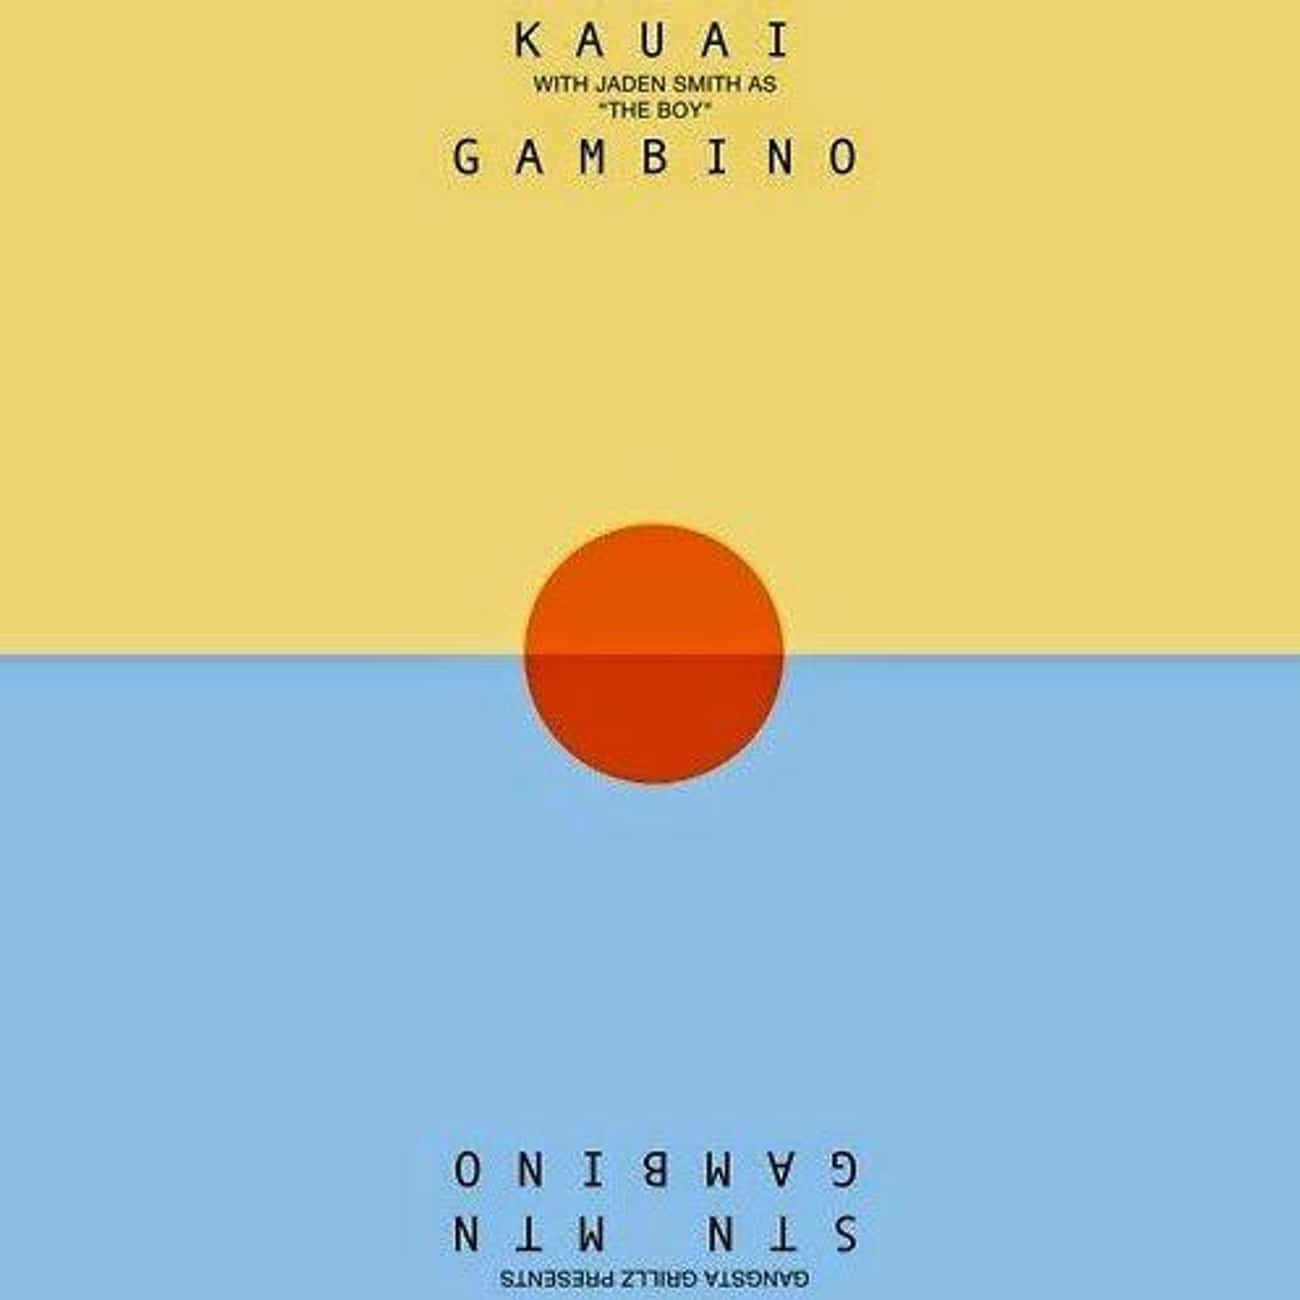 STN MTN / Kauai is listed (or ranked) 4 on the list The Best Childish Gambino Albums, Ranked